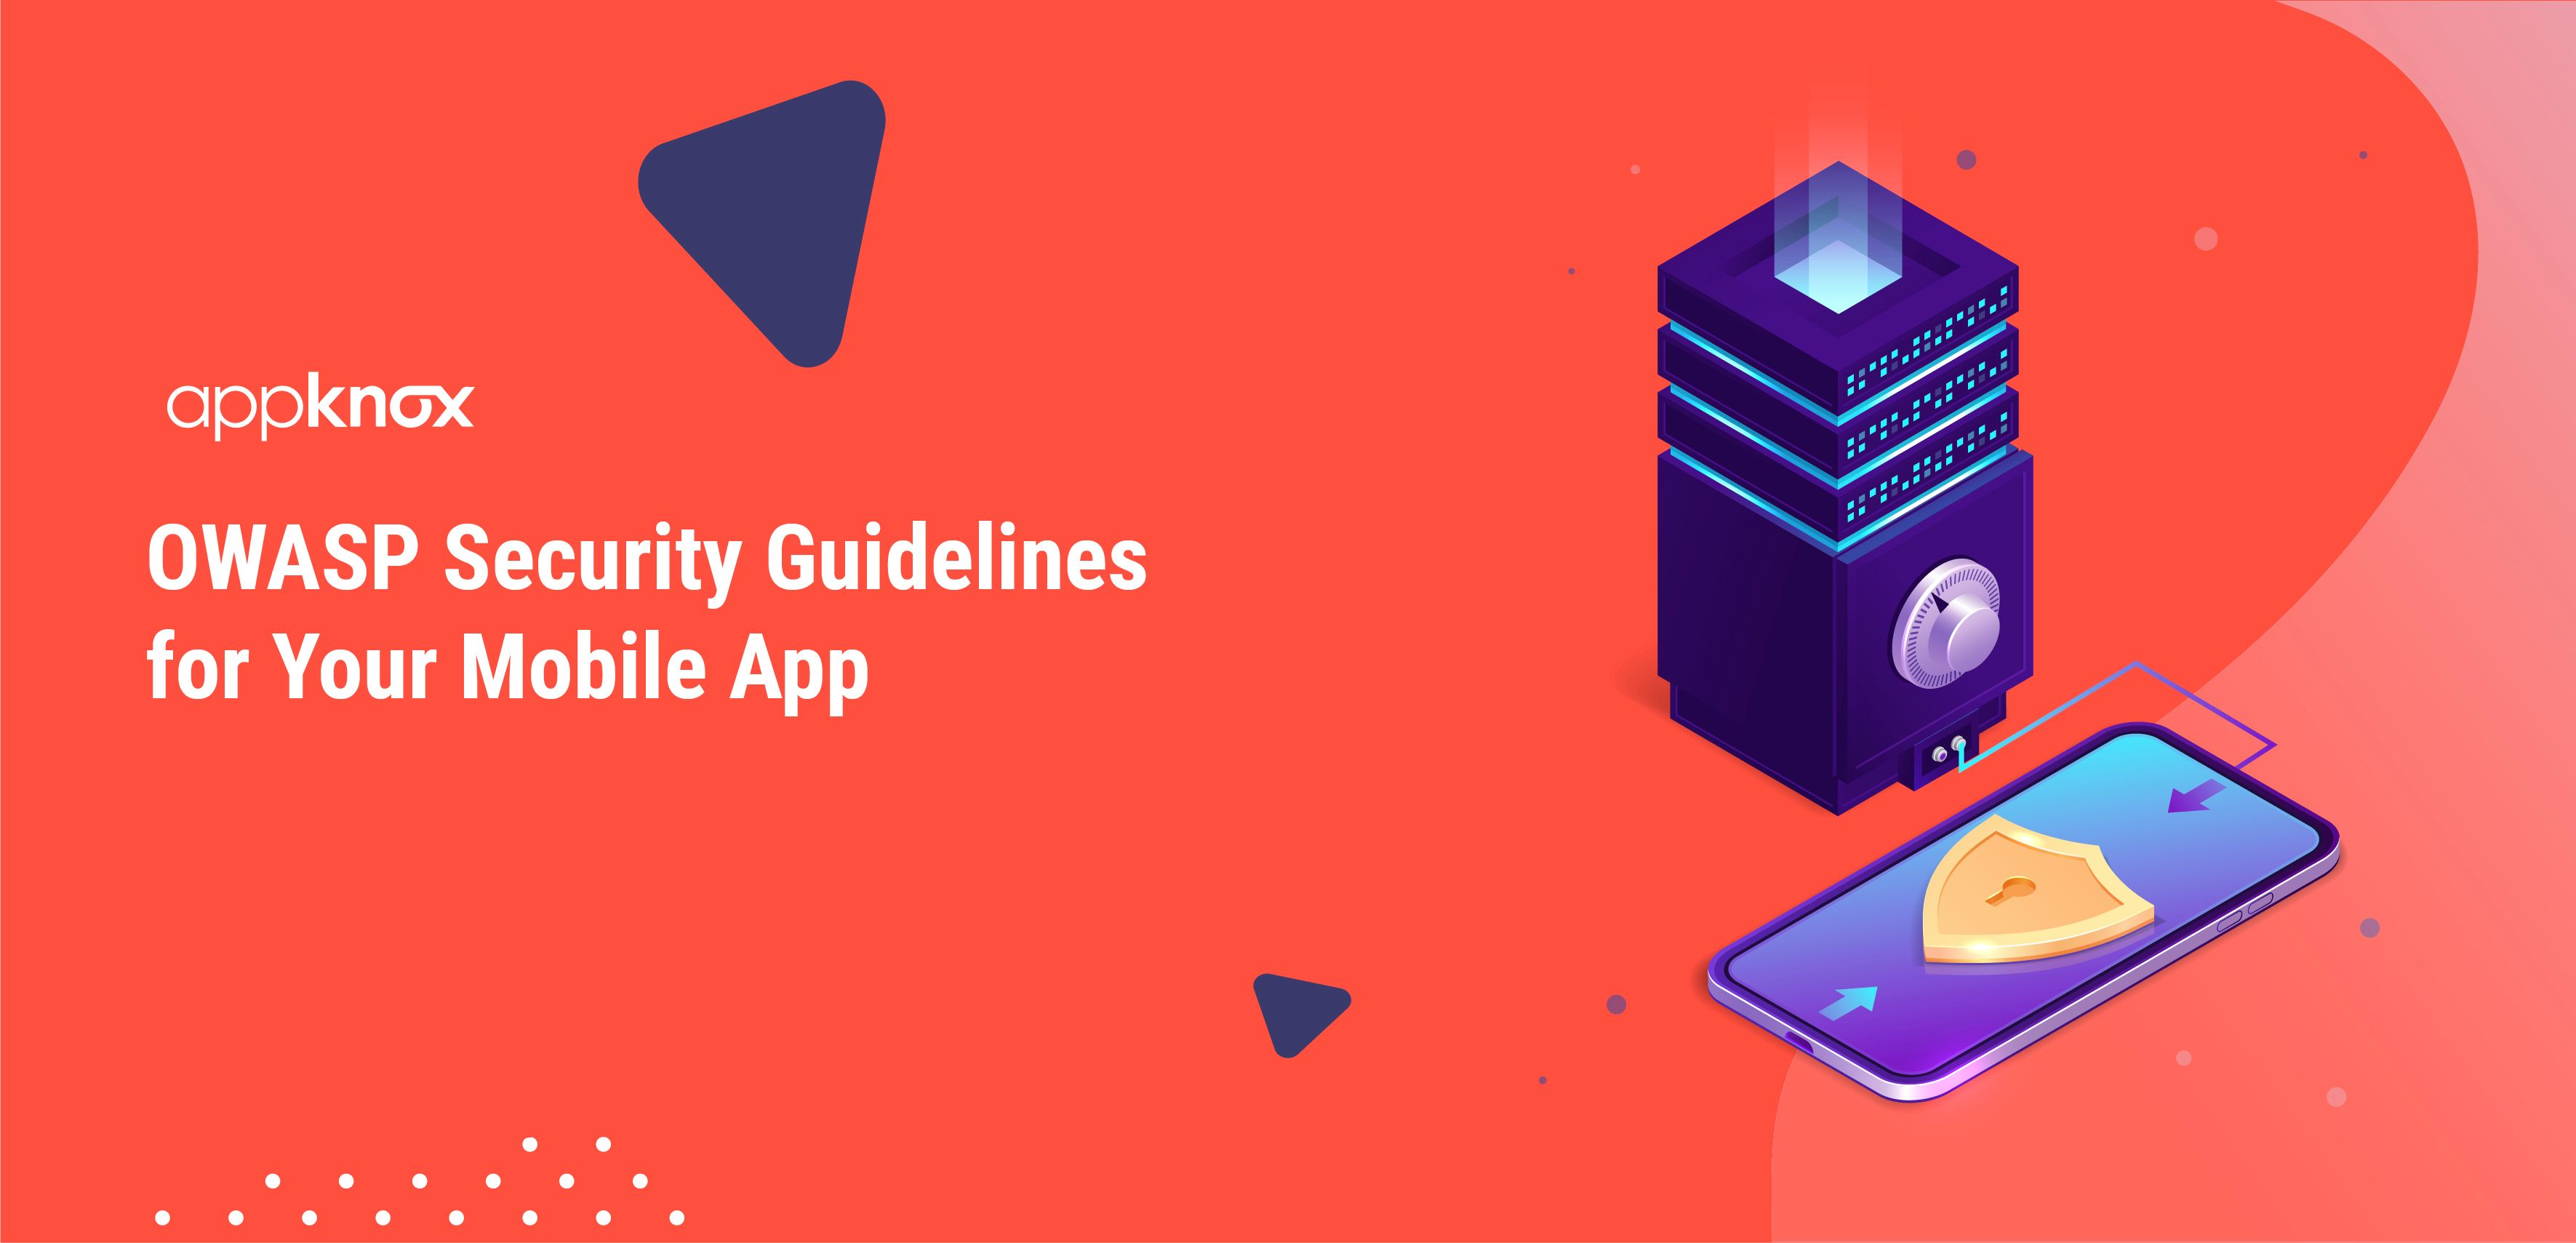 OWASP Security Guidelines for Your Mobile App